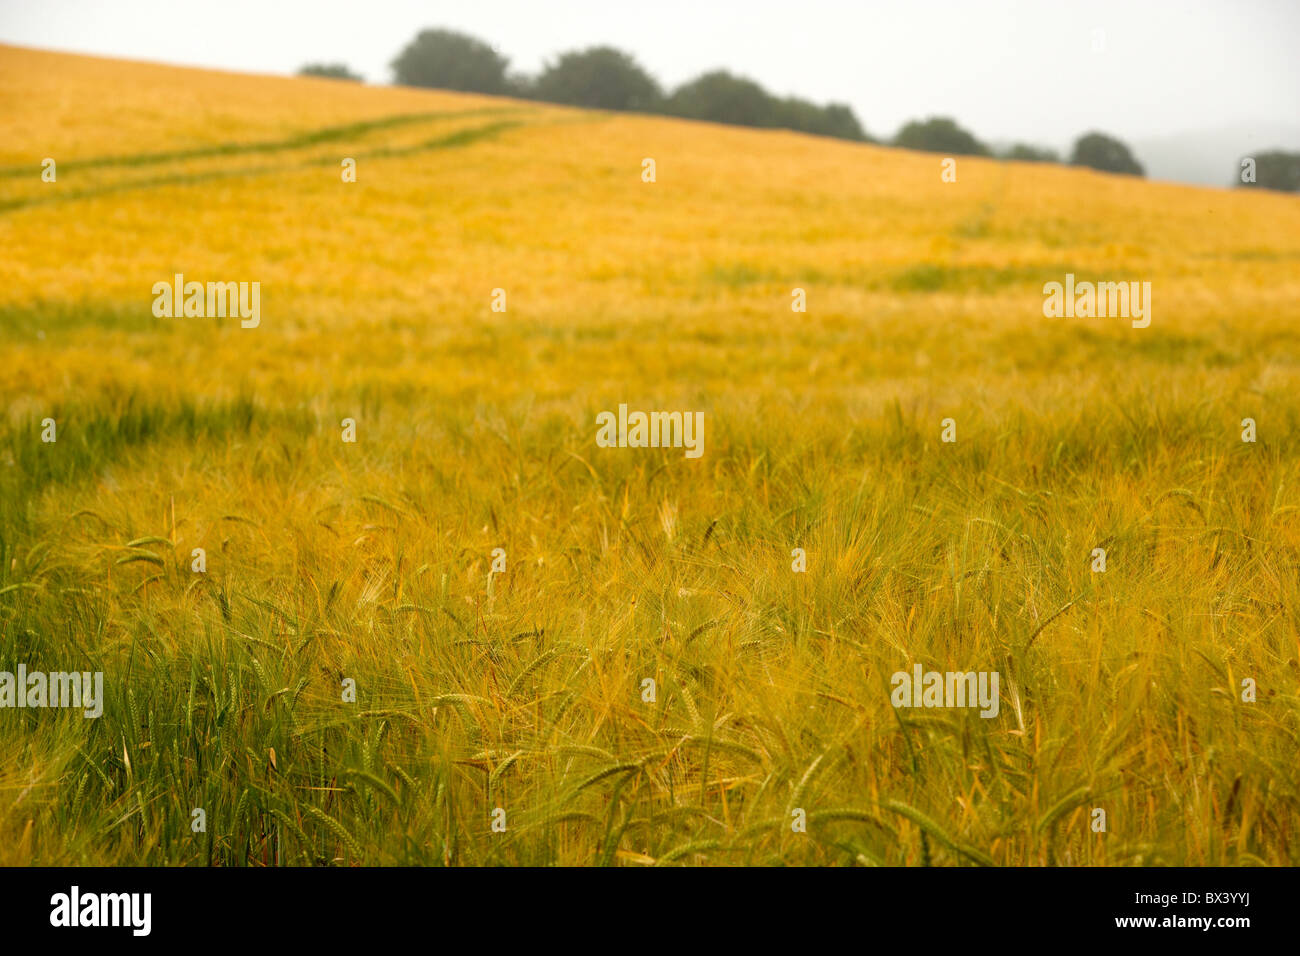 young wheat growing in field UK - Stock Image